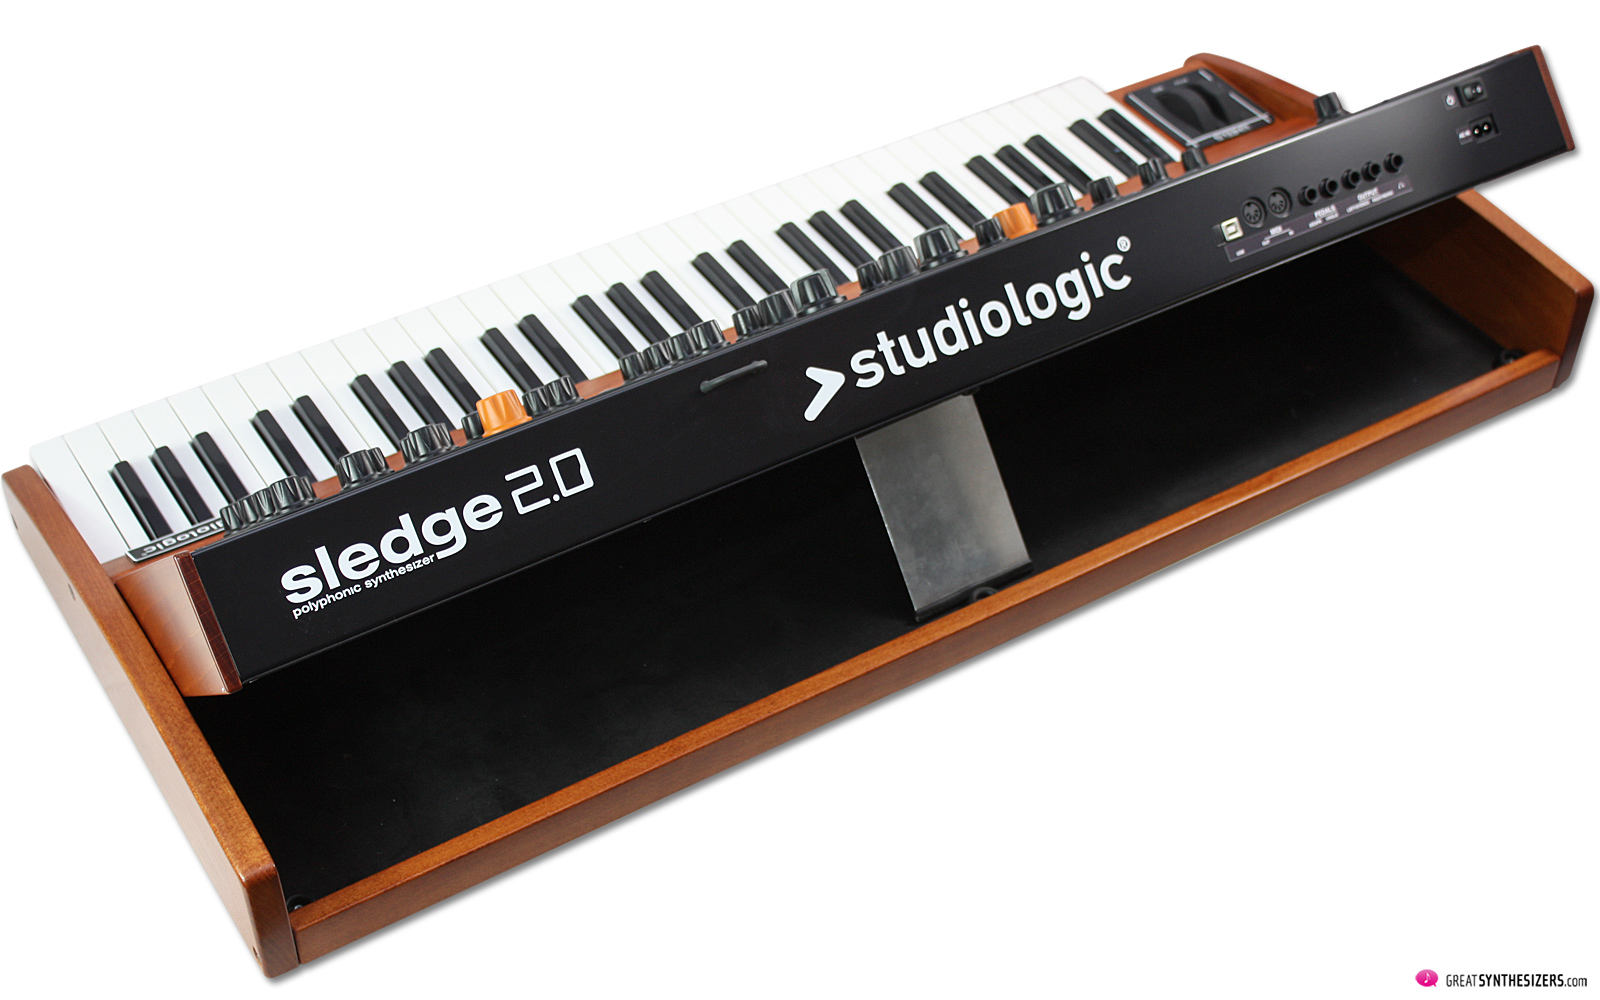 Studiologic Sledge 2.0 (modified)